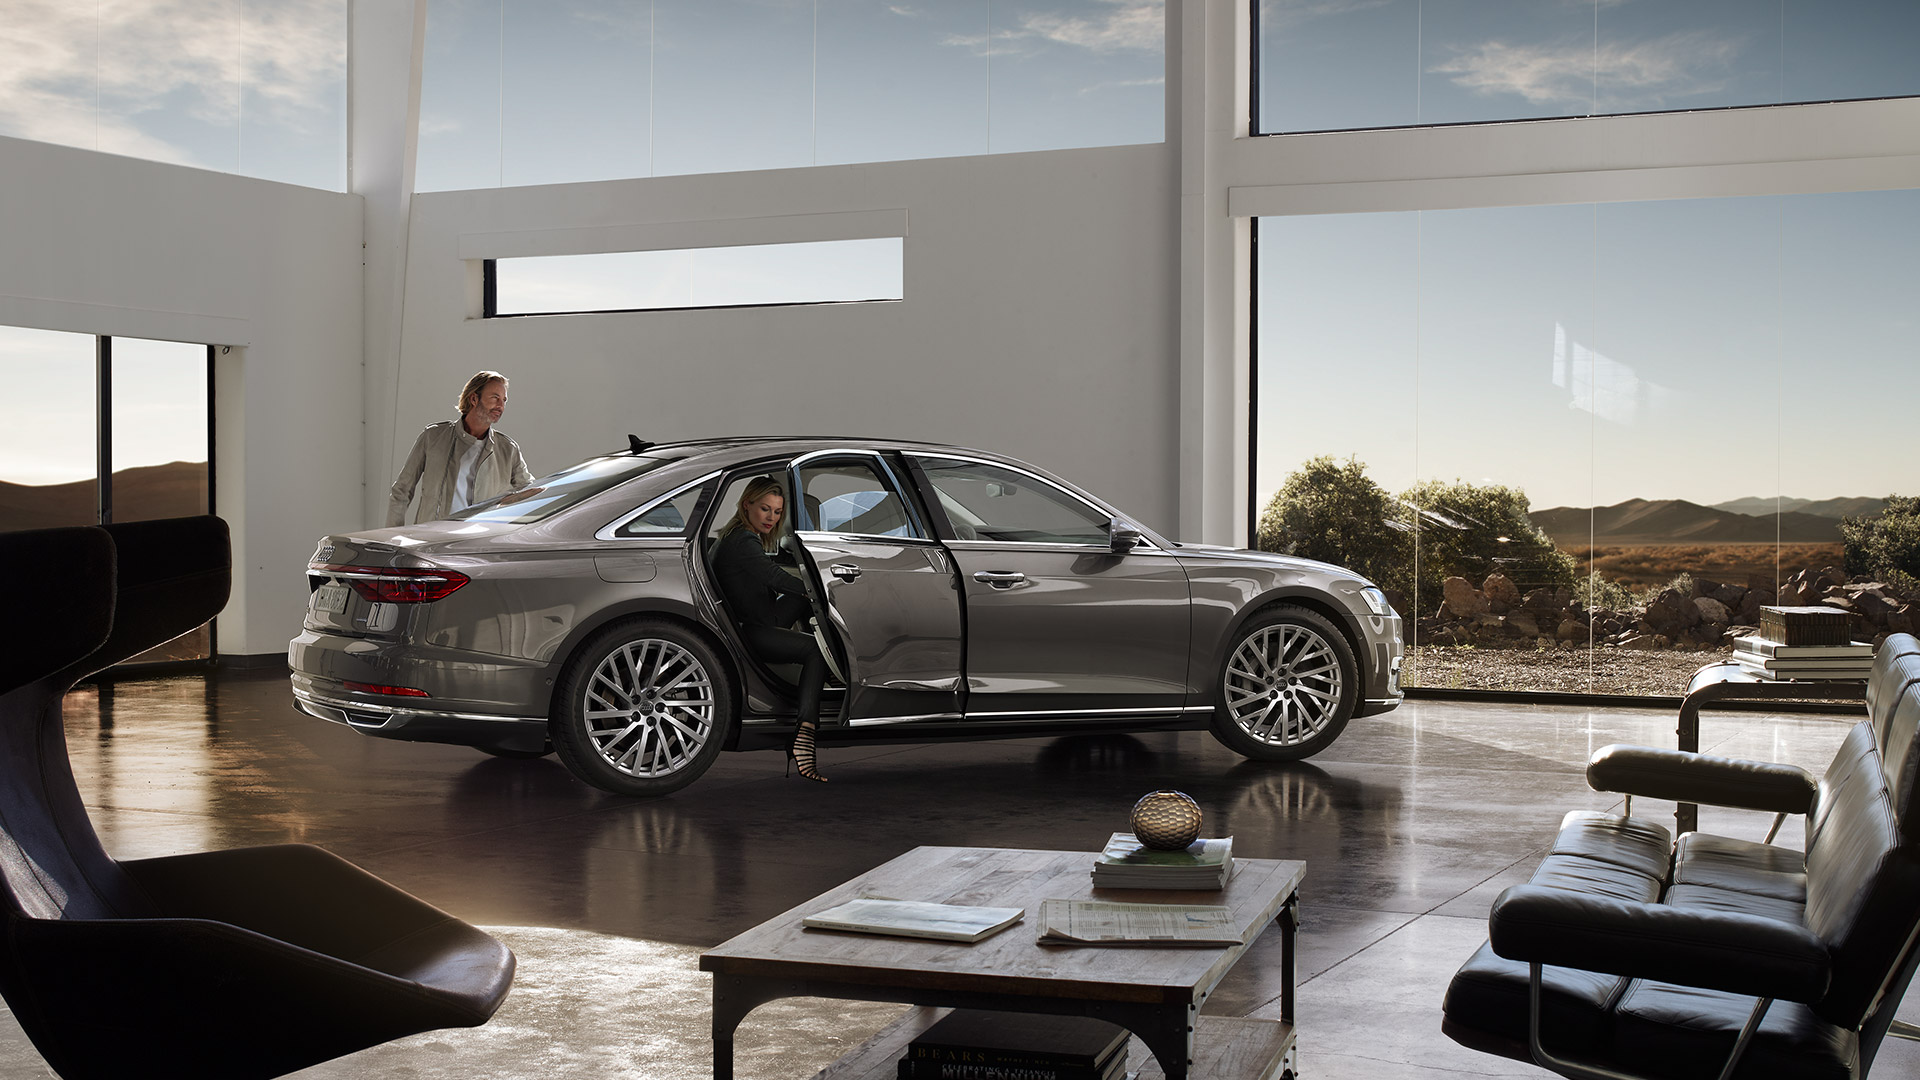 Nuova Audi A8: Welcome to the Future